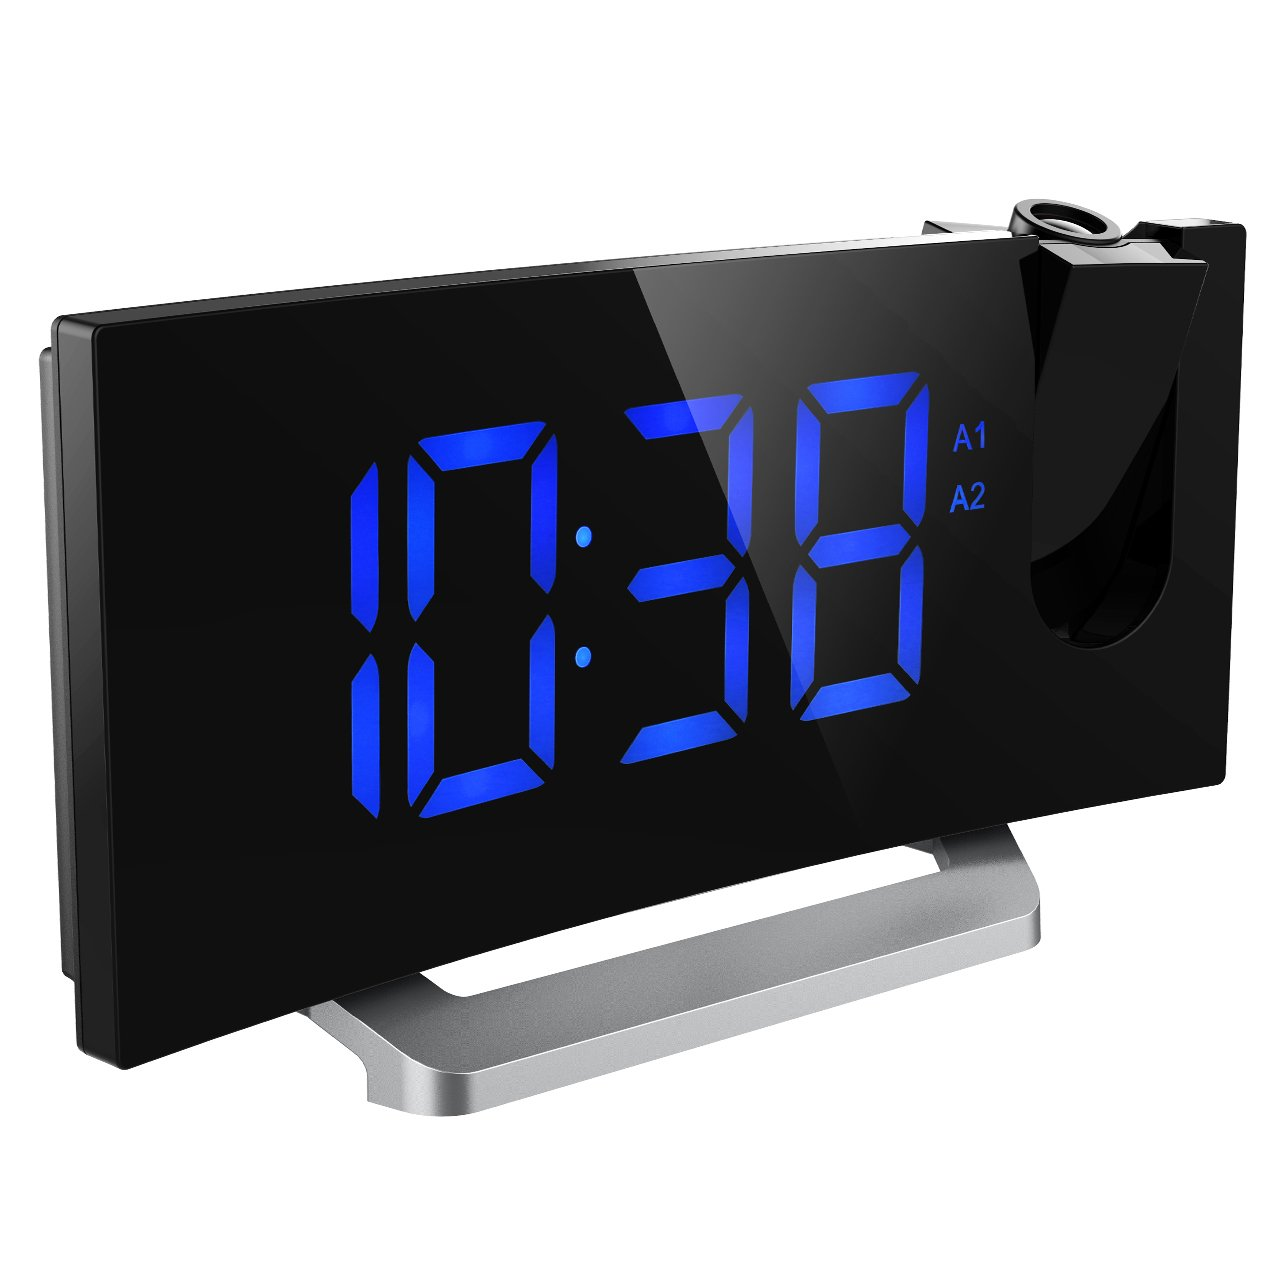 Mpow Projection Clock, FM Radio Alarm Clock, Curved-Screen Digital Alarm Clock, 5'' LED Display with Dimmer, Dual Alarm with USB Charging Port, 12/24 Hours, Backup Battery for Clock Setting PAMPHM127BBUS-USAA2